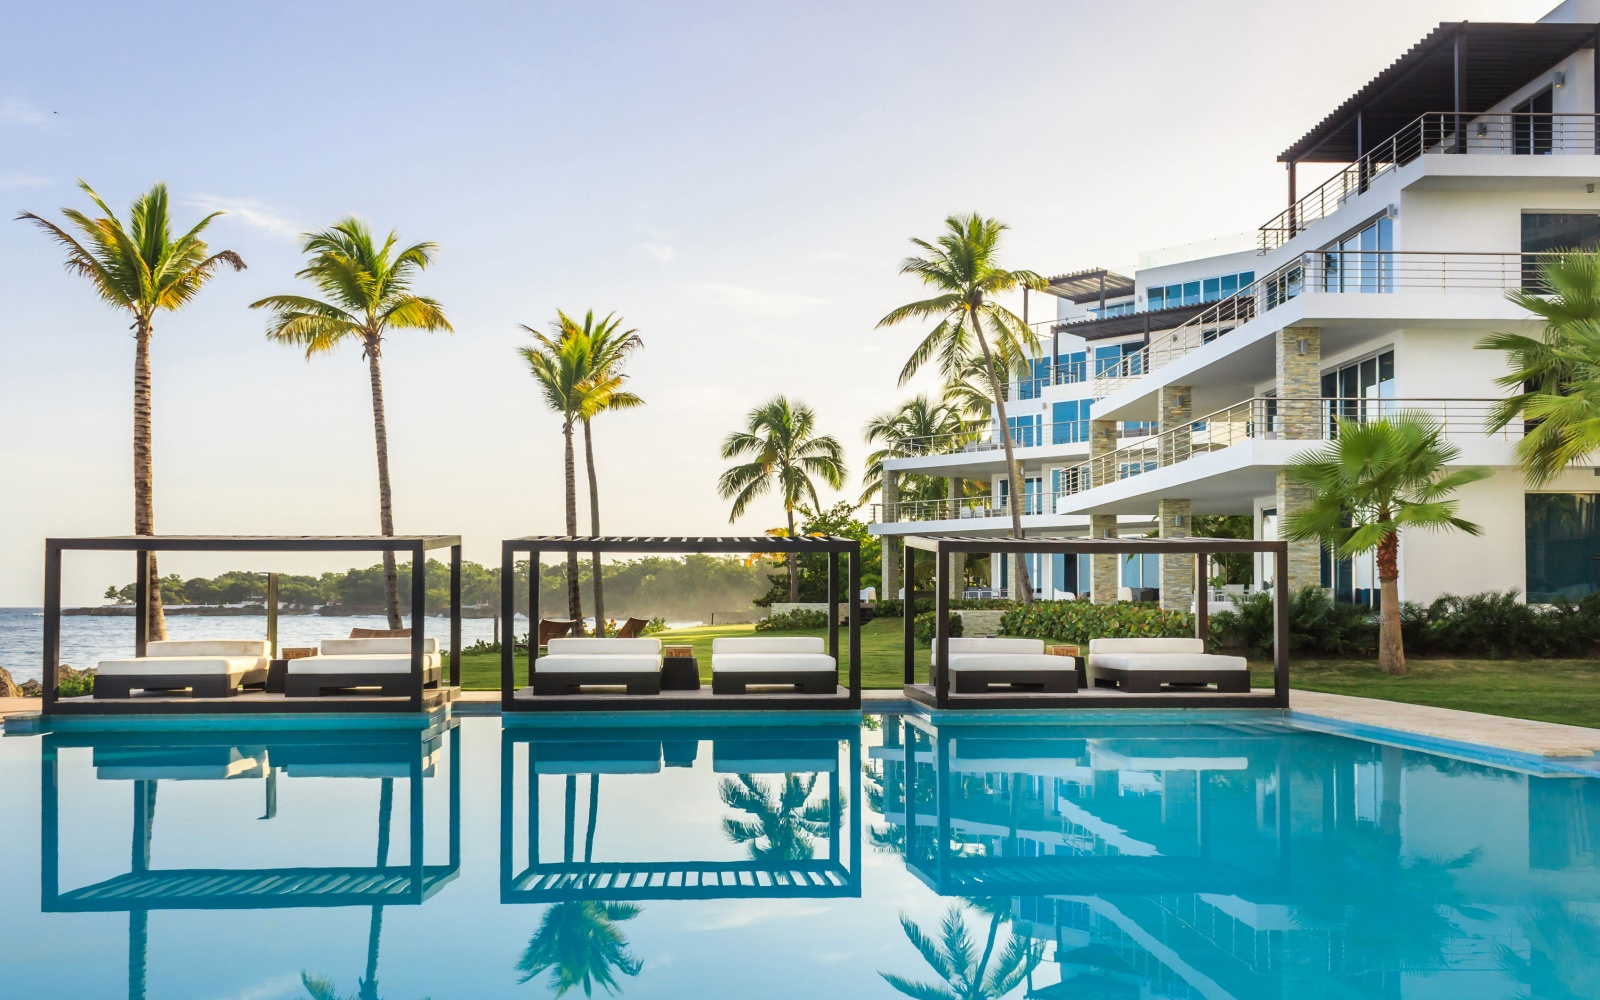 The Gansevoort Hotel in Puerto Plata, DR